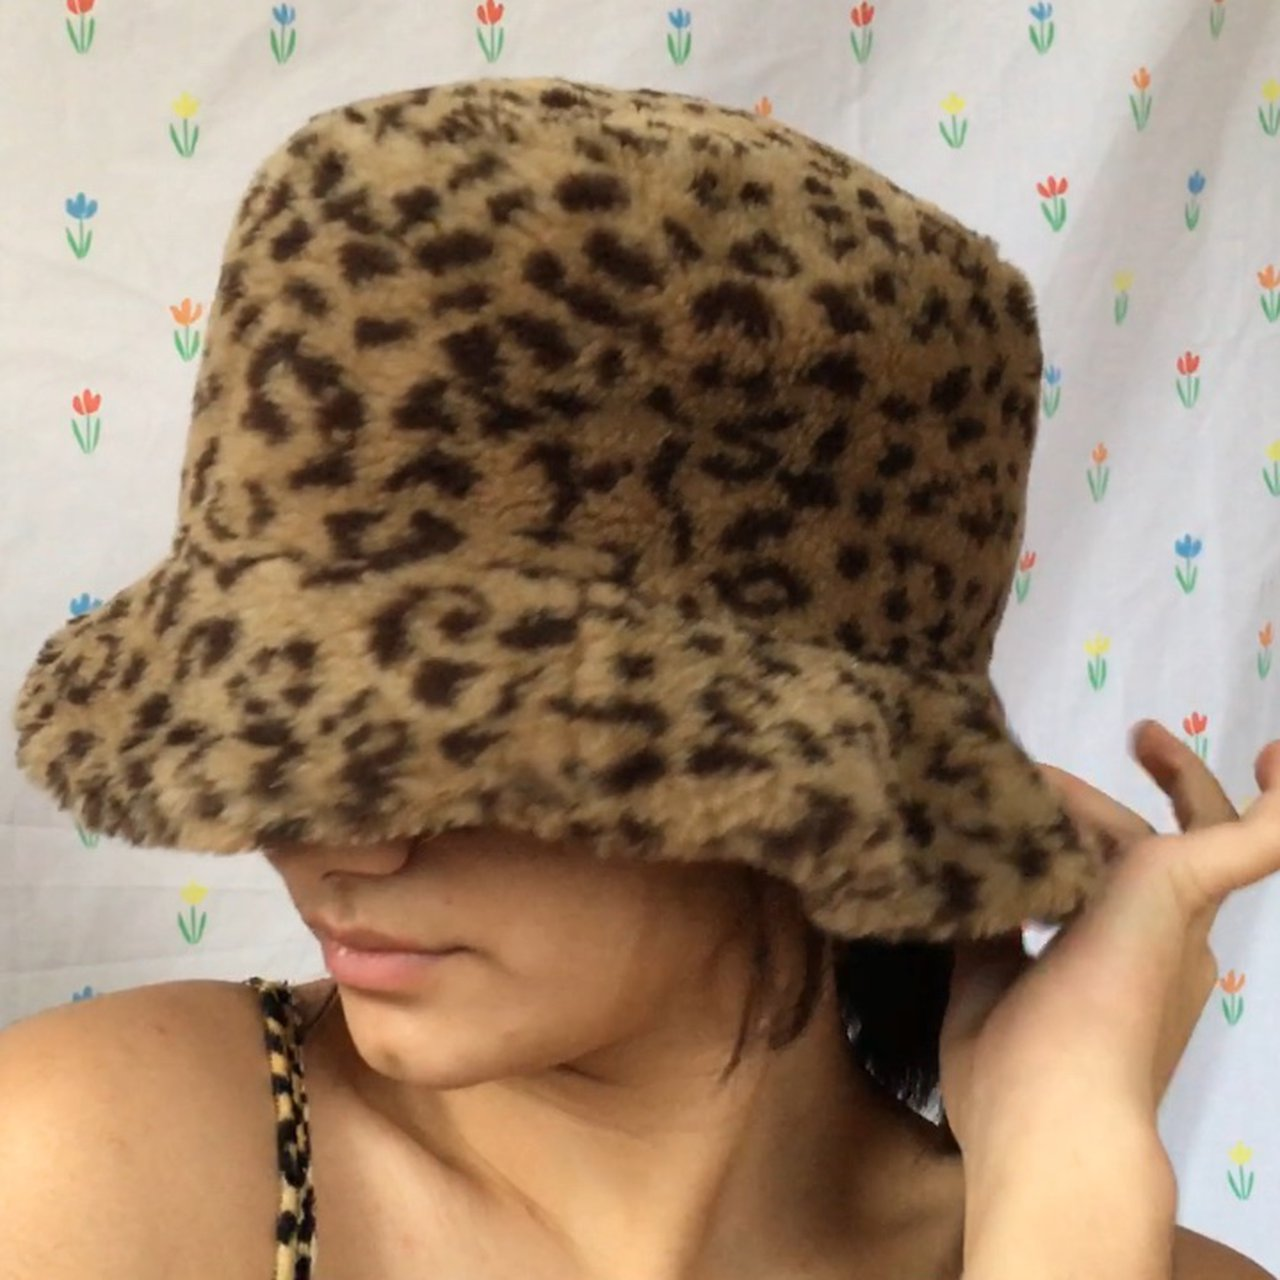 fuzzy leopard bucket hat!! Does it get much better than and - Depop f17d5803742